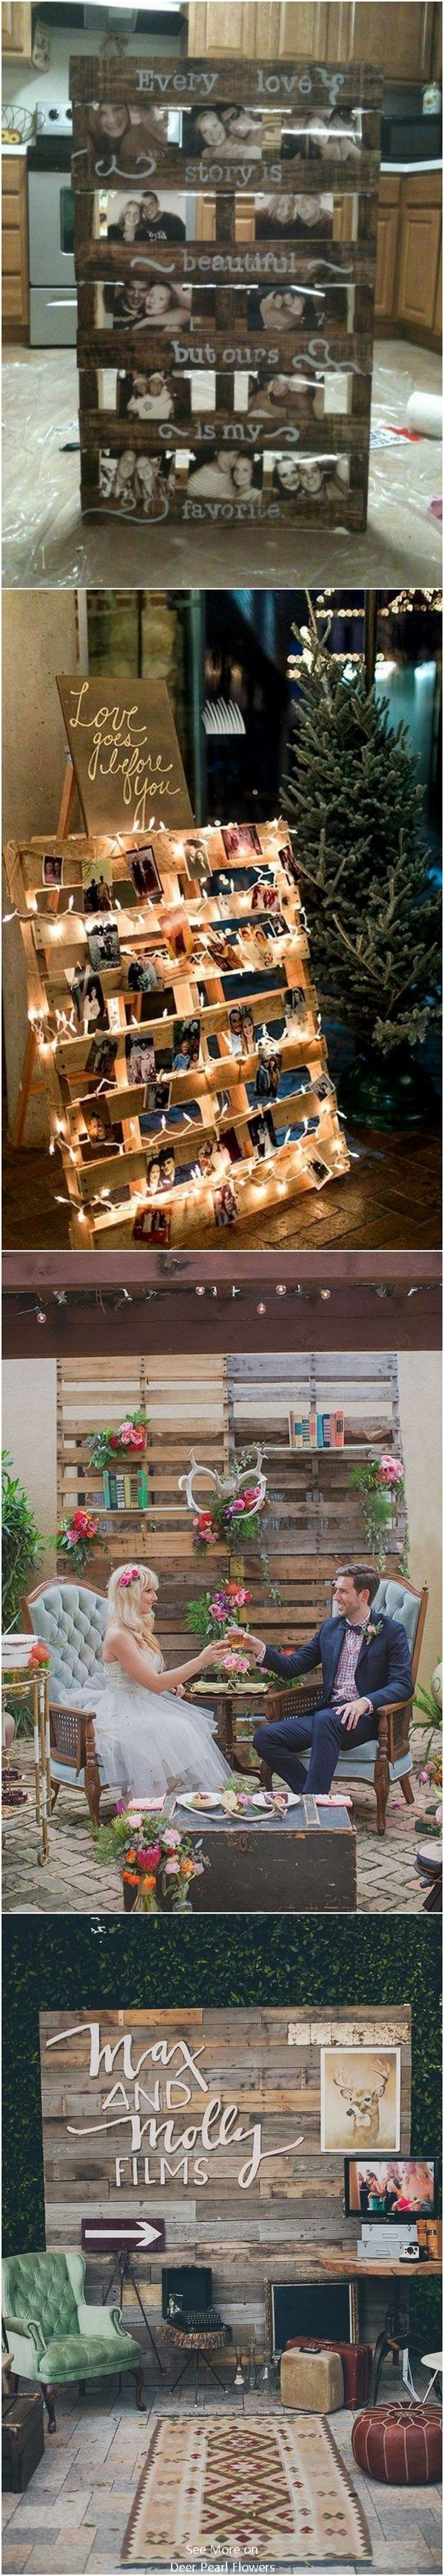 Love the use of palettes in these rustic country wedding decor ideas